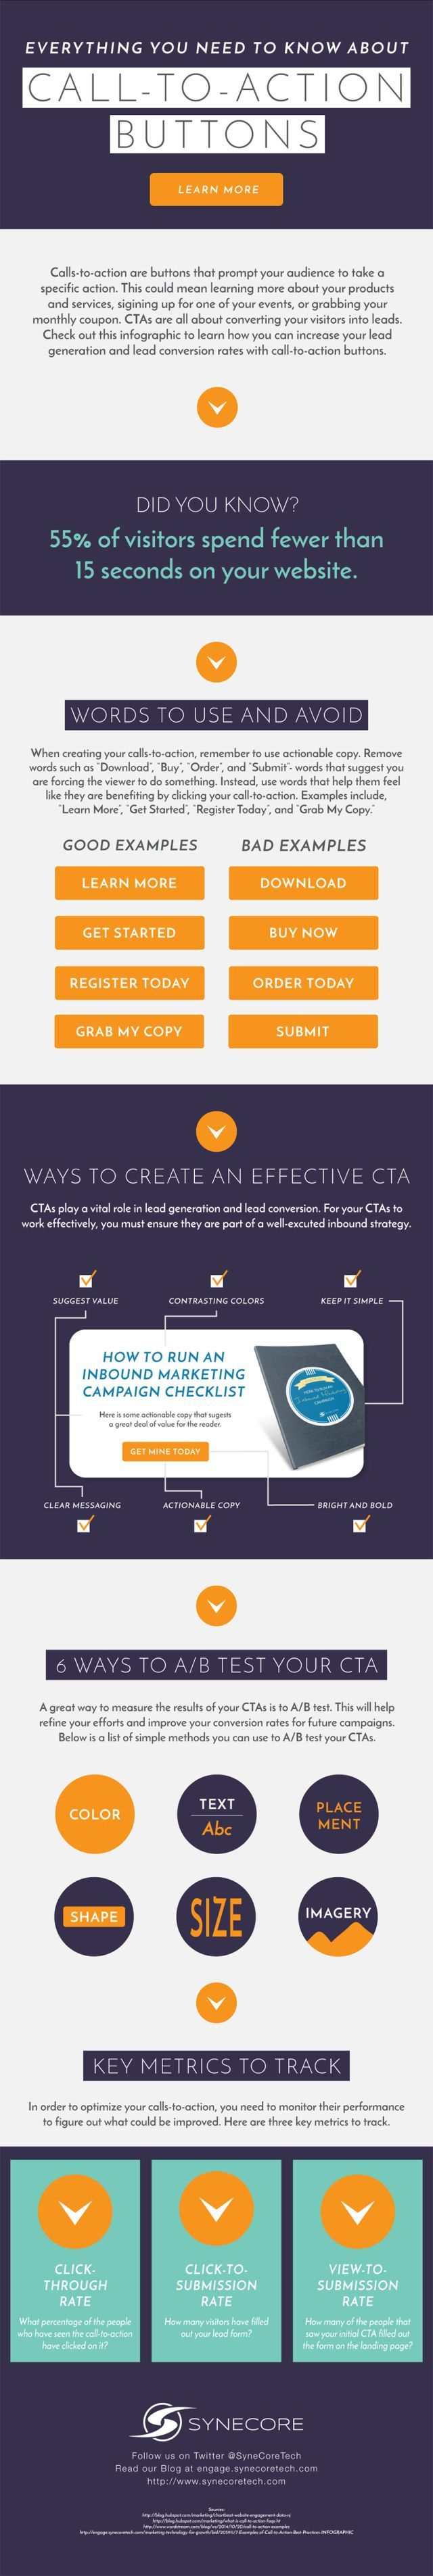 20 Call To Action Tips For A Higher Performing Small Business Website Web Design Tips Business Website Marketing